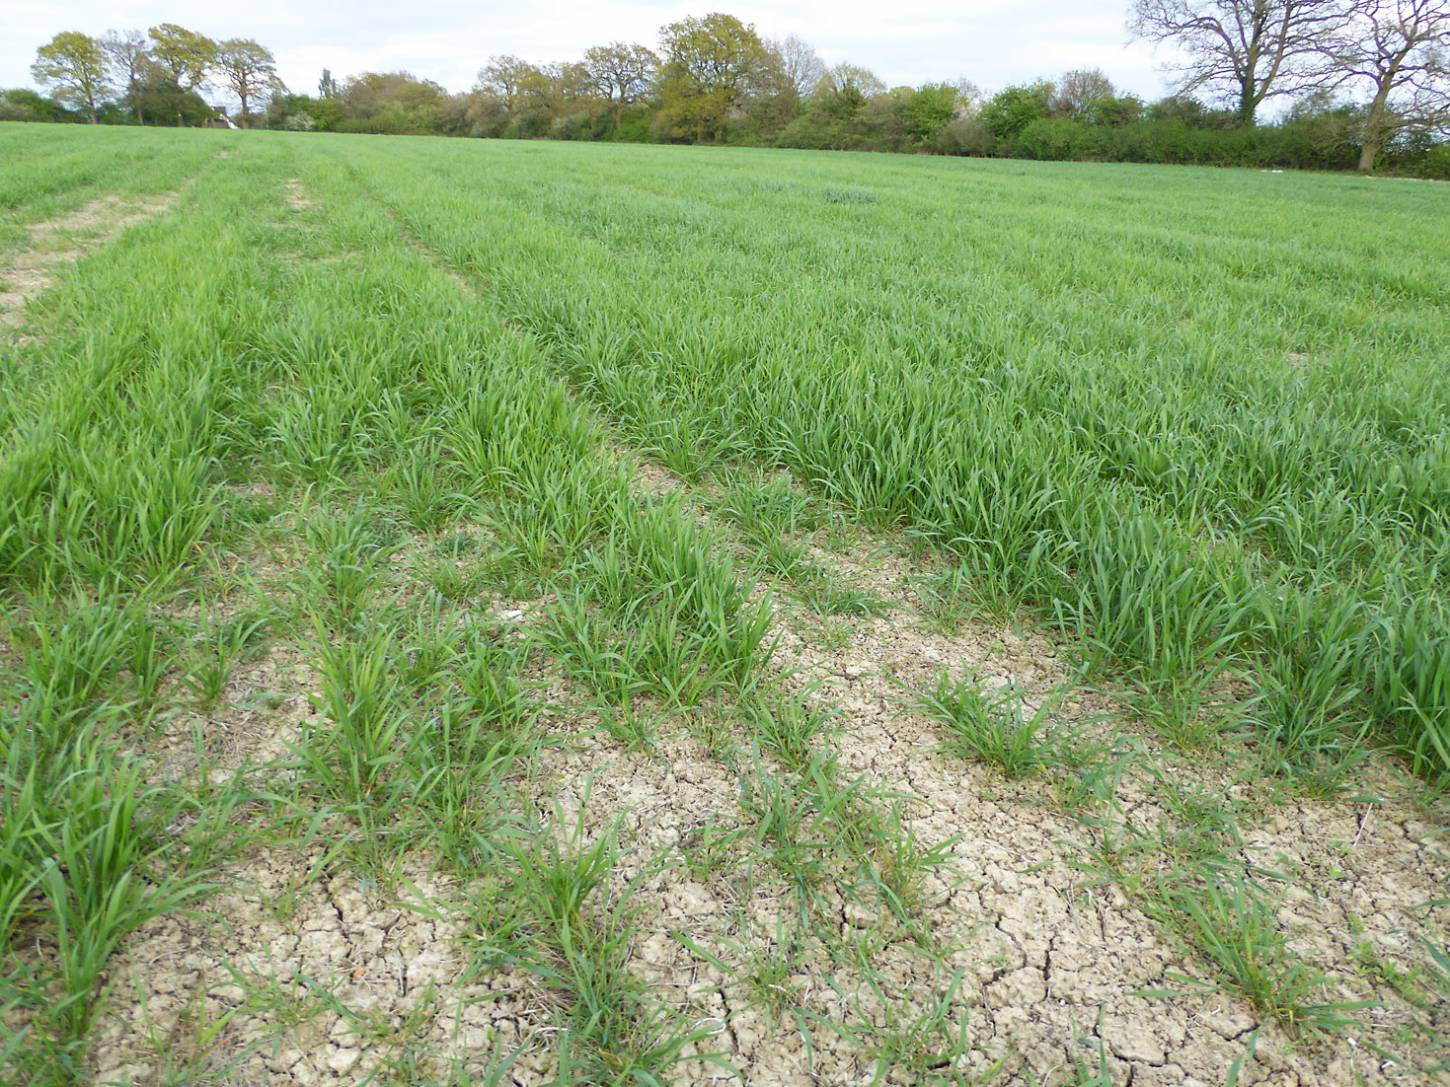 review April '17 - Miller's Choice heritage winter wheat population with some crow damage at front but otherwise quite nice. - 6:20pm&nbsp;12<sup>th</sup>&nbsp;Apr.&nbsp;'17